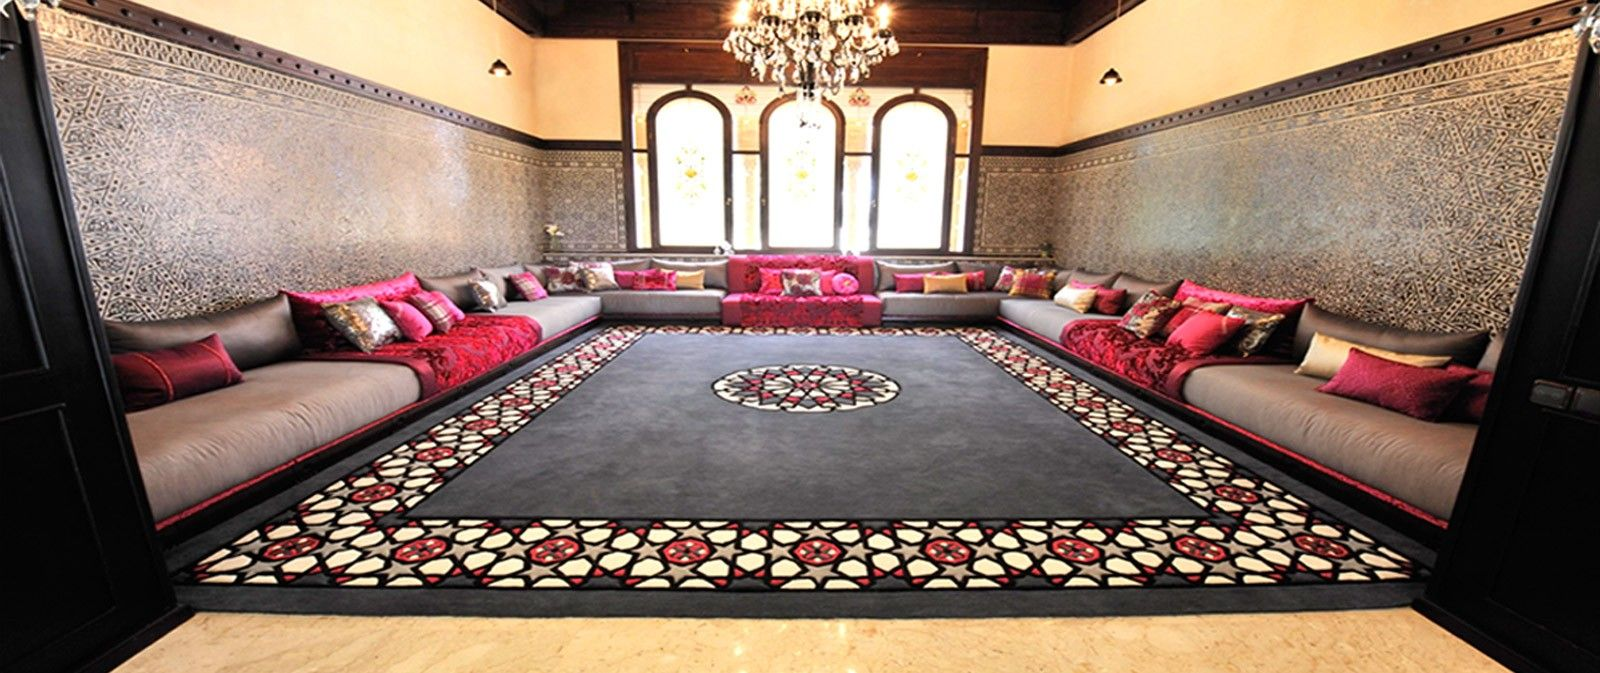 tapis artco pour salon marocain id es de d coration. Black Bedroom Furniture Sets. Home Design Ideas